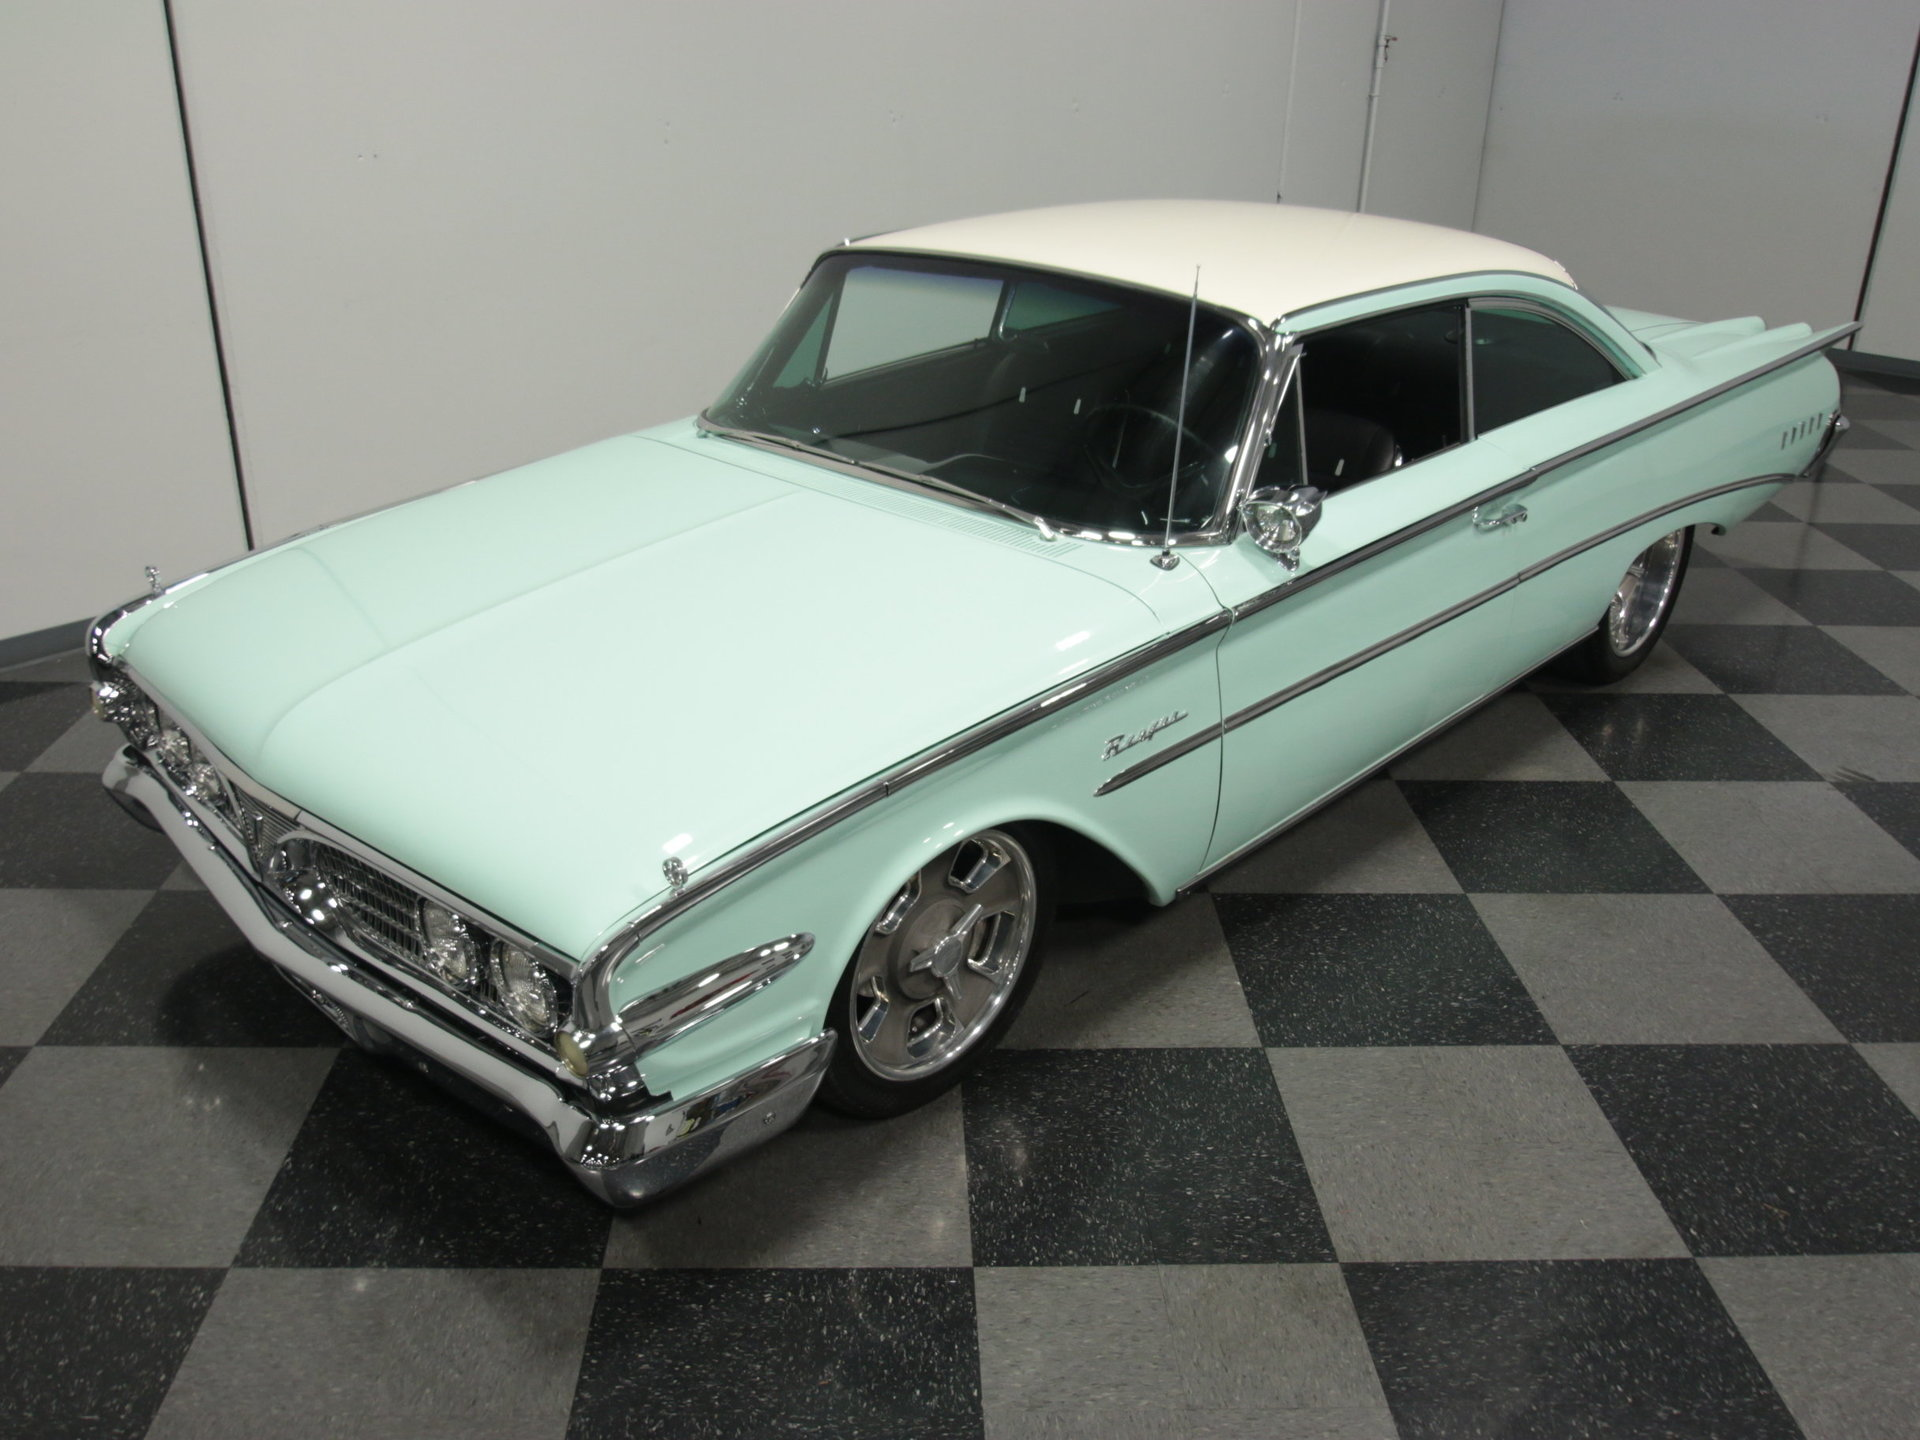 1960 Edsel Ranger Streetside Classics The Nations Trusted 1954 Chevy El Camino Show More Photos